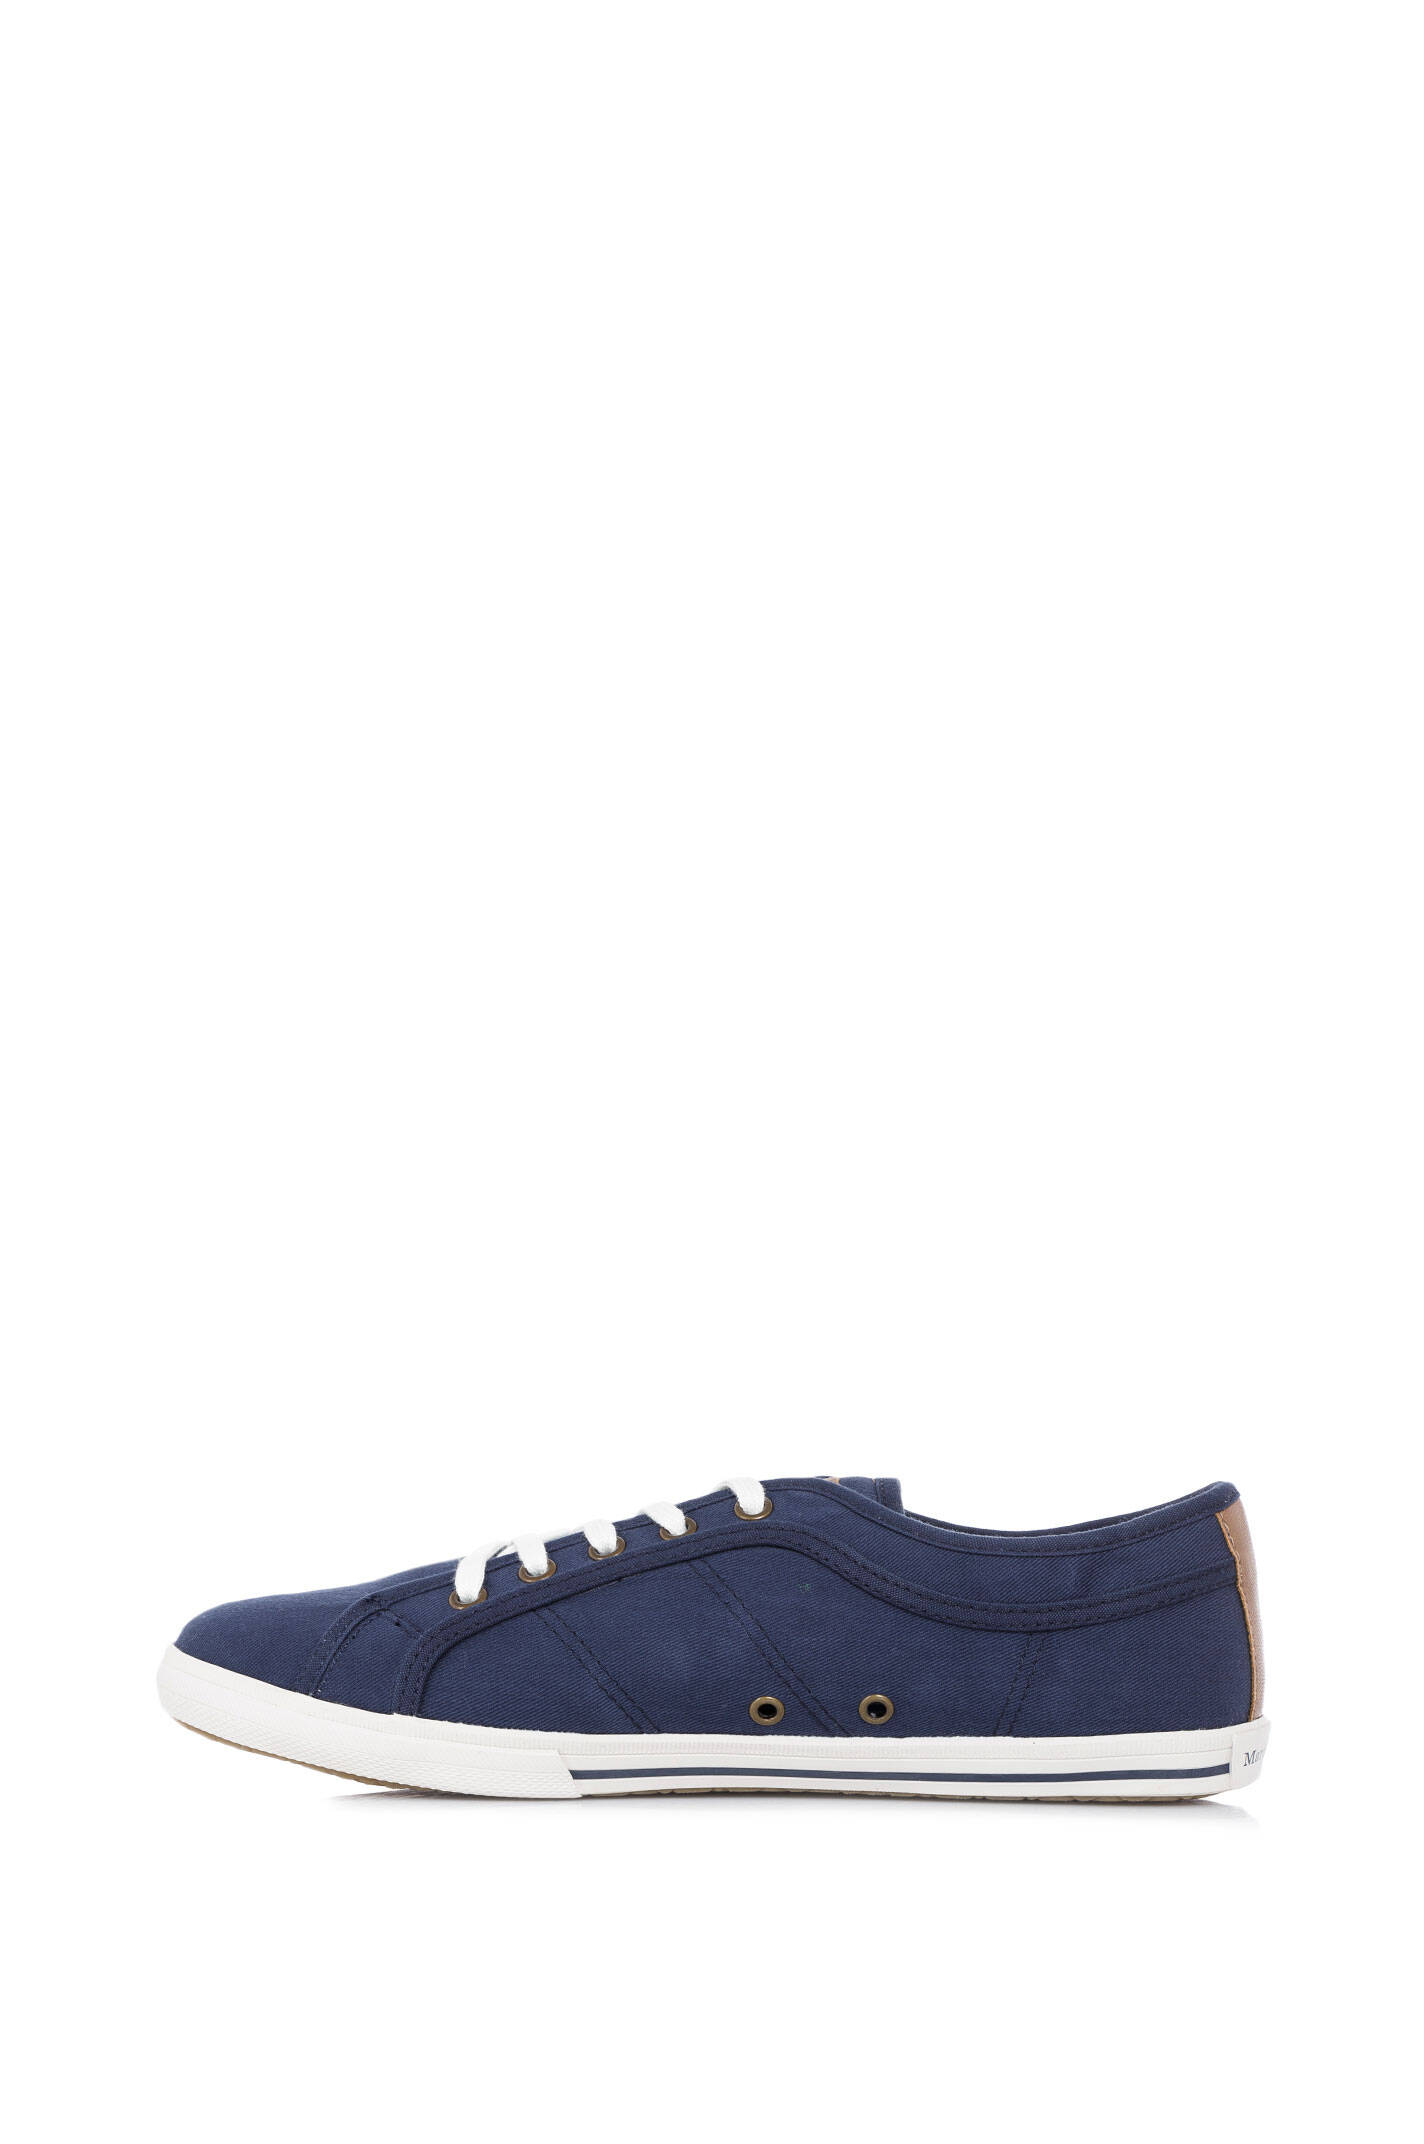 sneakers marc o 39 polo navy blue sneakers. Black Bedroom Furniture Sets. Home Design Ideas